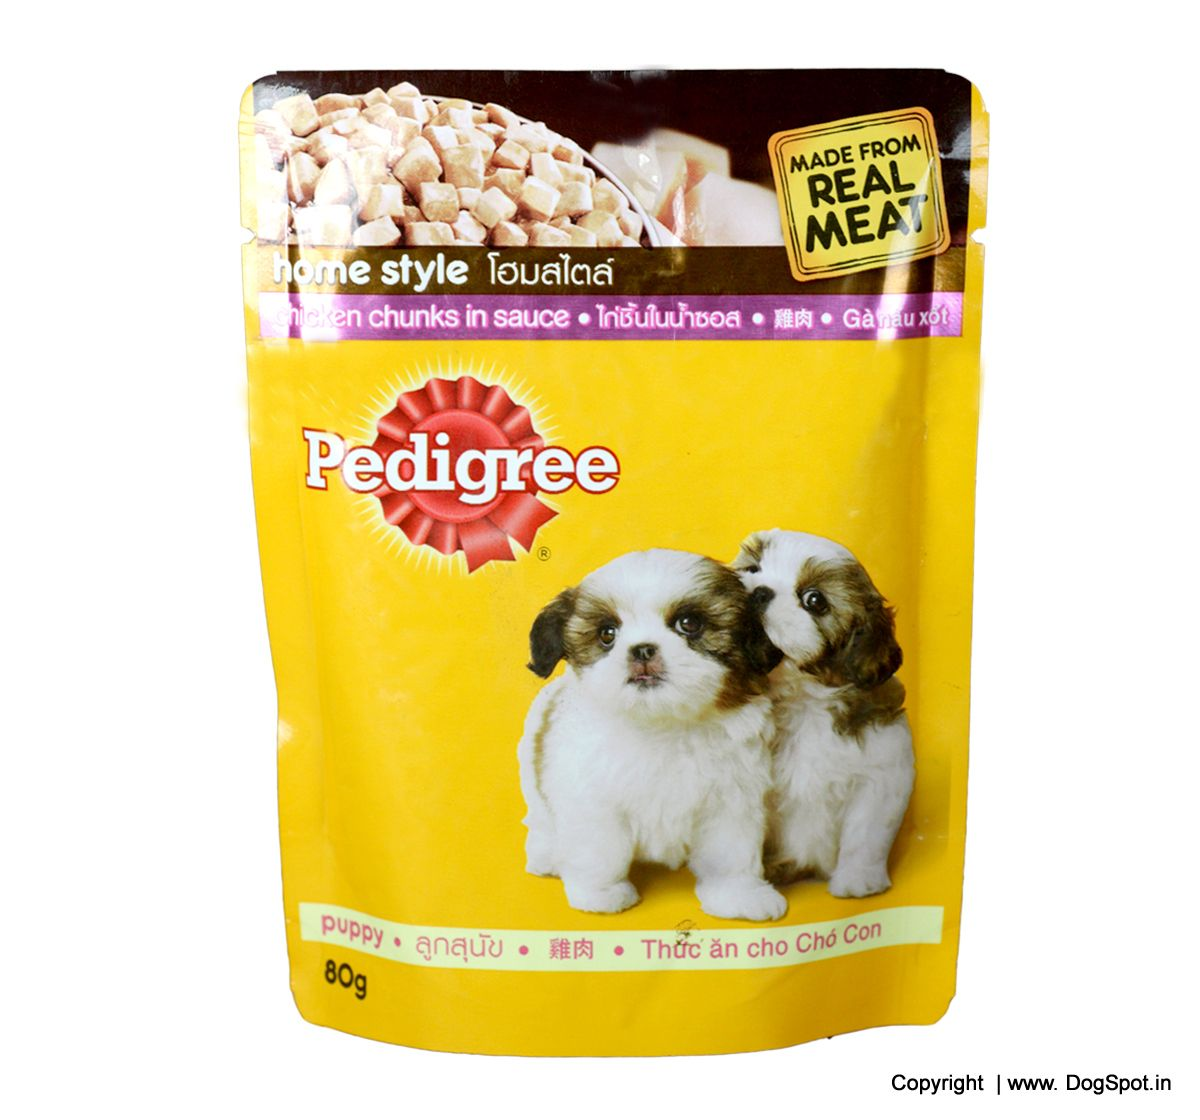 Pedigree Dog Treat Puppy Chicken Buy Online Pedigree Dog Food Http - Every day this dog goes shopping all by himself to get treats